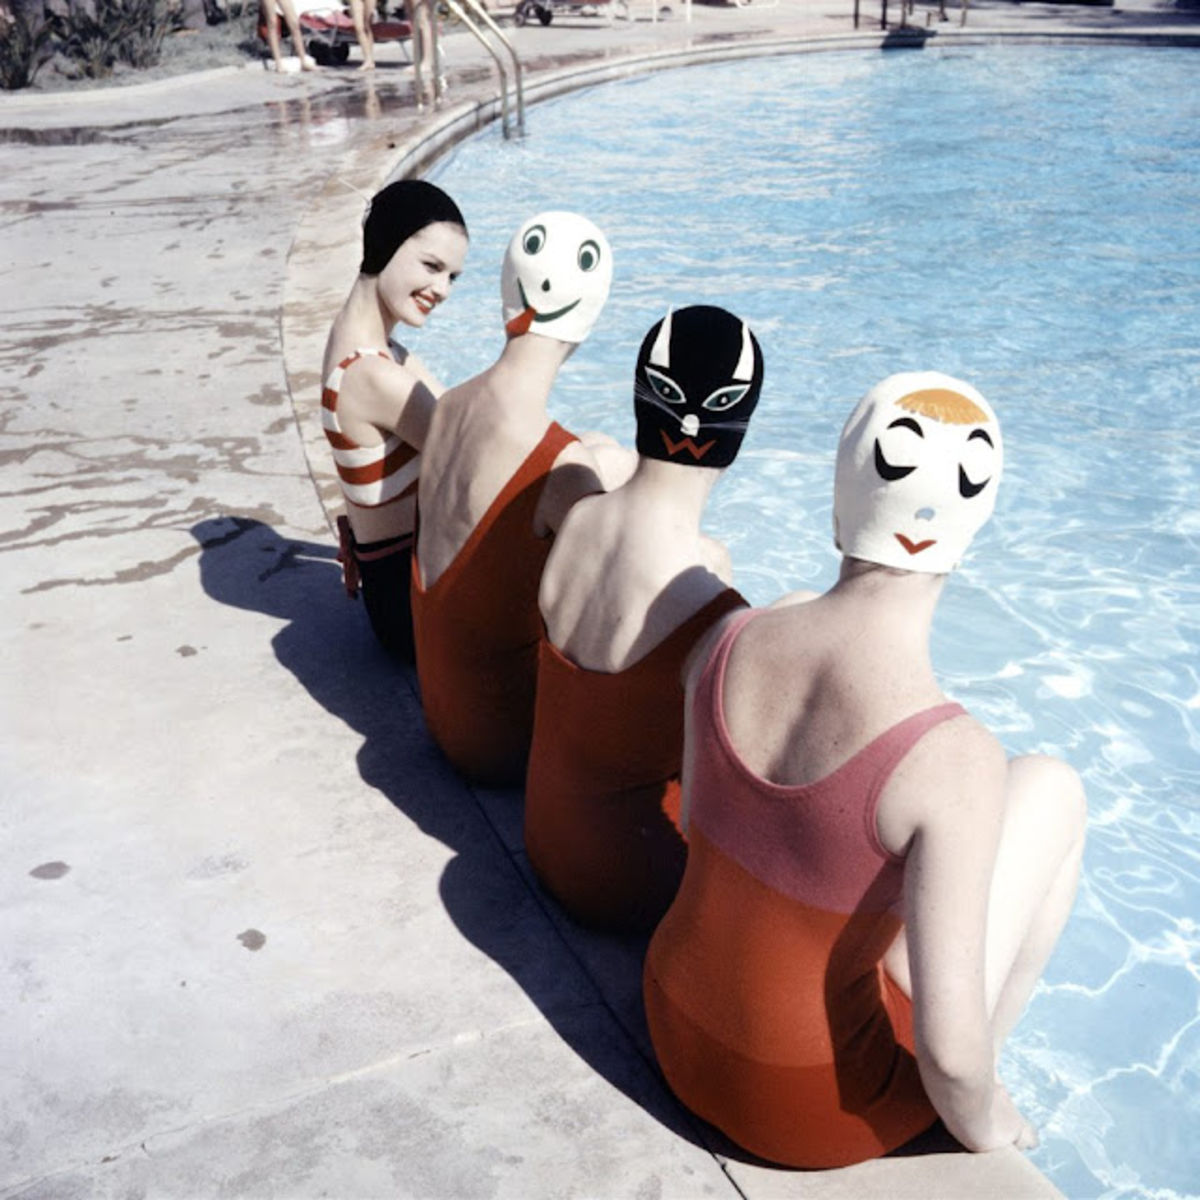 girls in bathing suits and vintage swimming caps printed with faces by a swimming pool